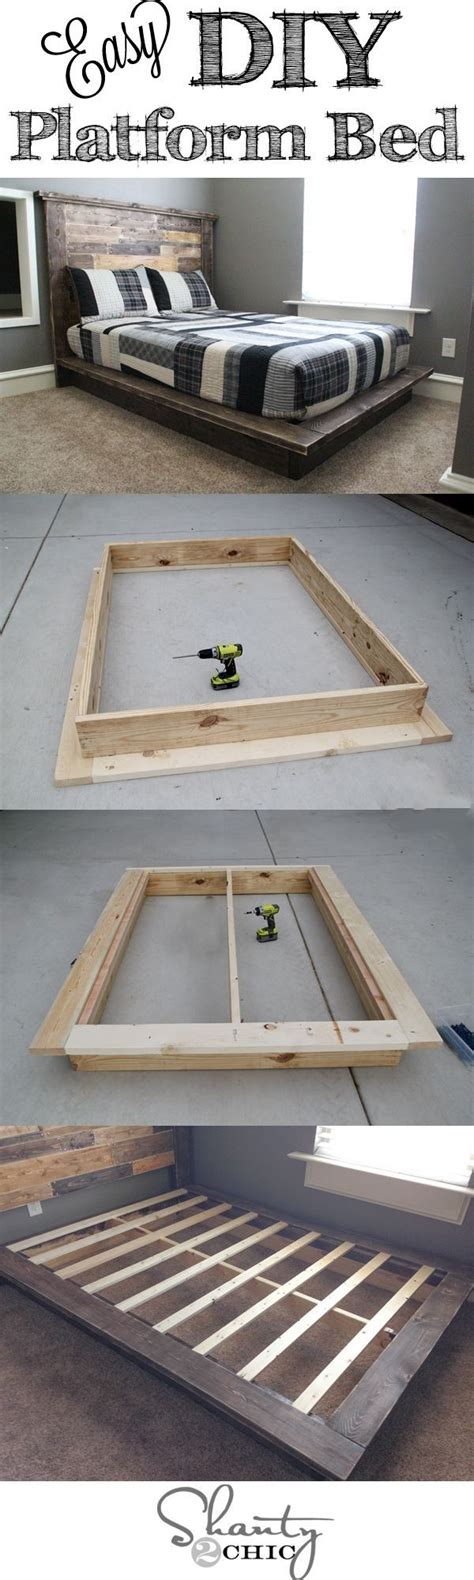 easy diy bed frame diy platform bed pictures photos and images for facebook